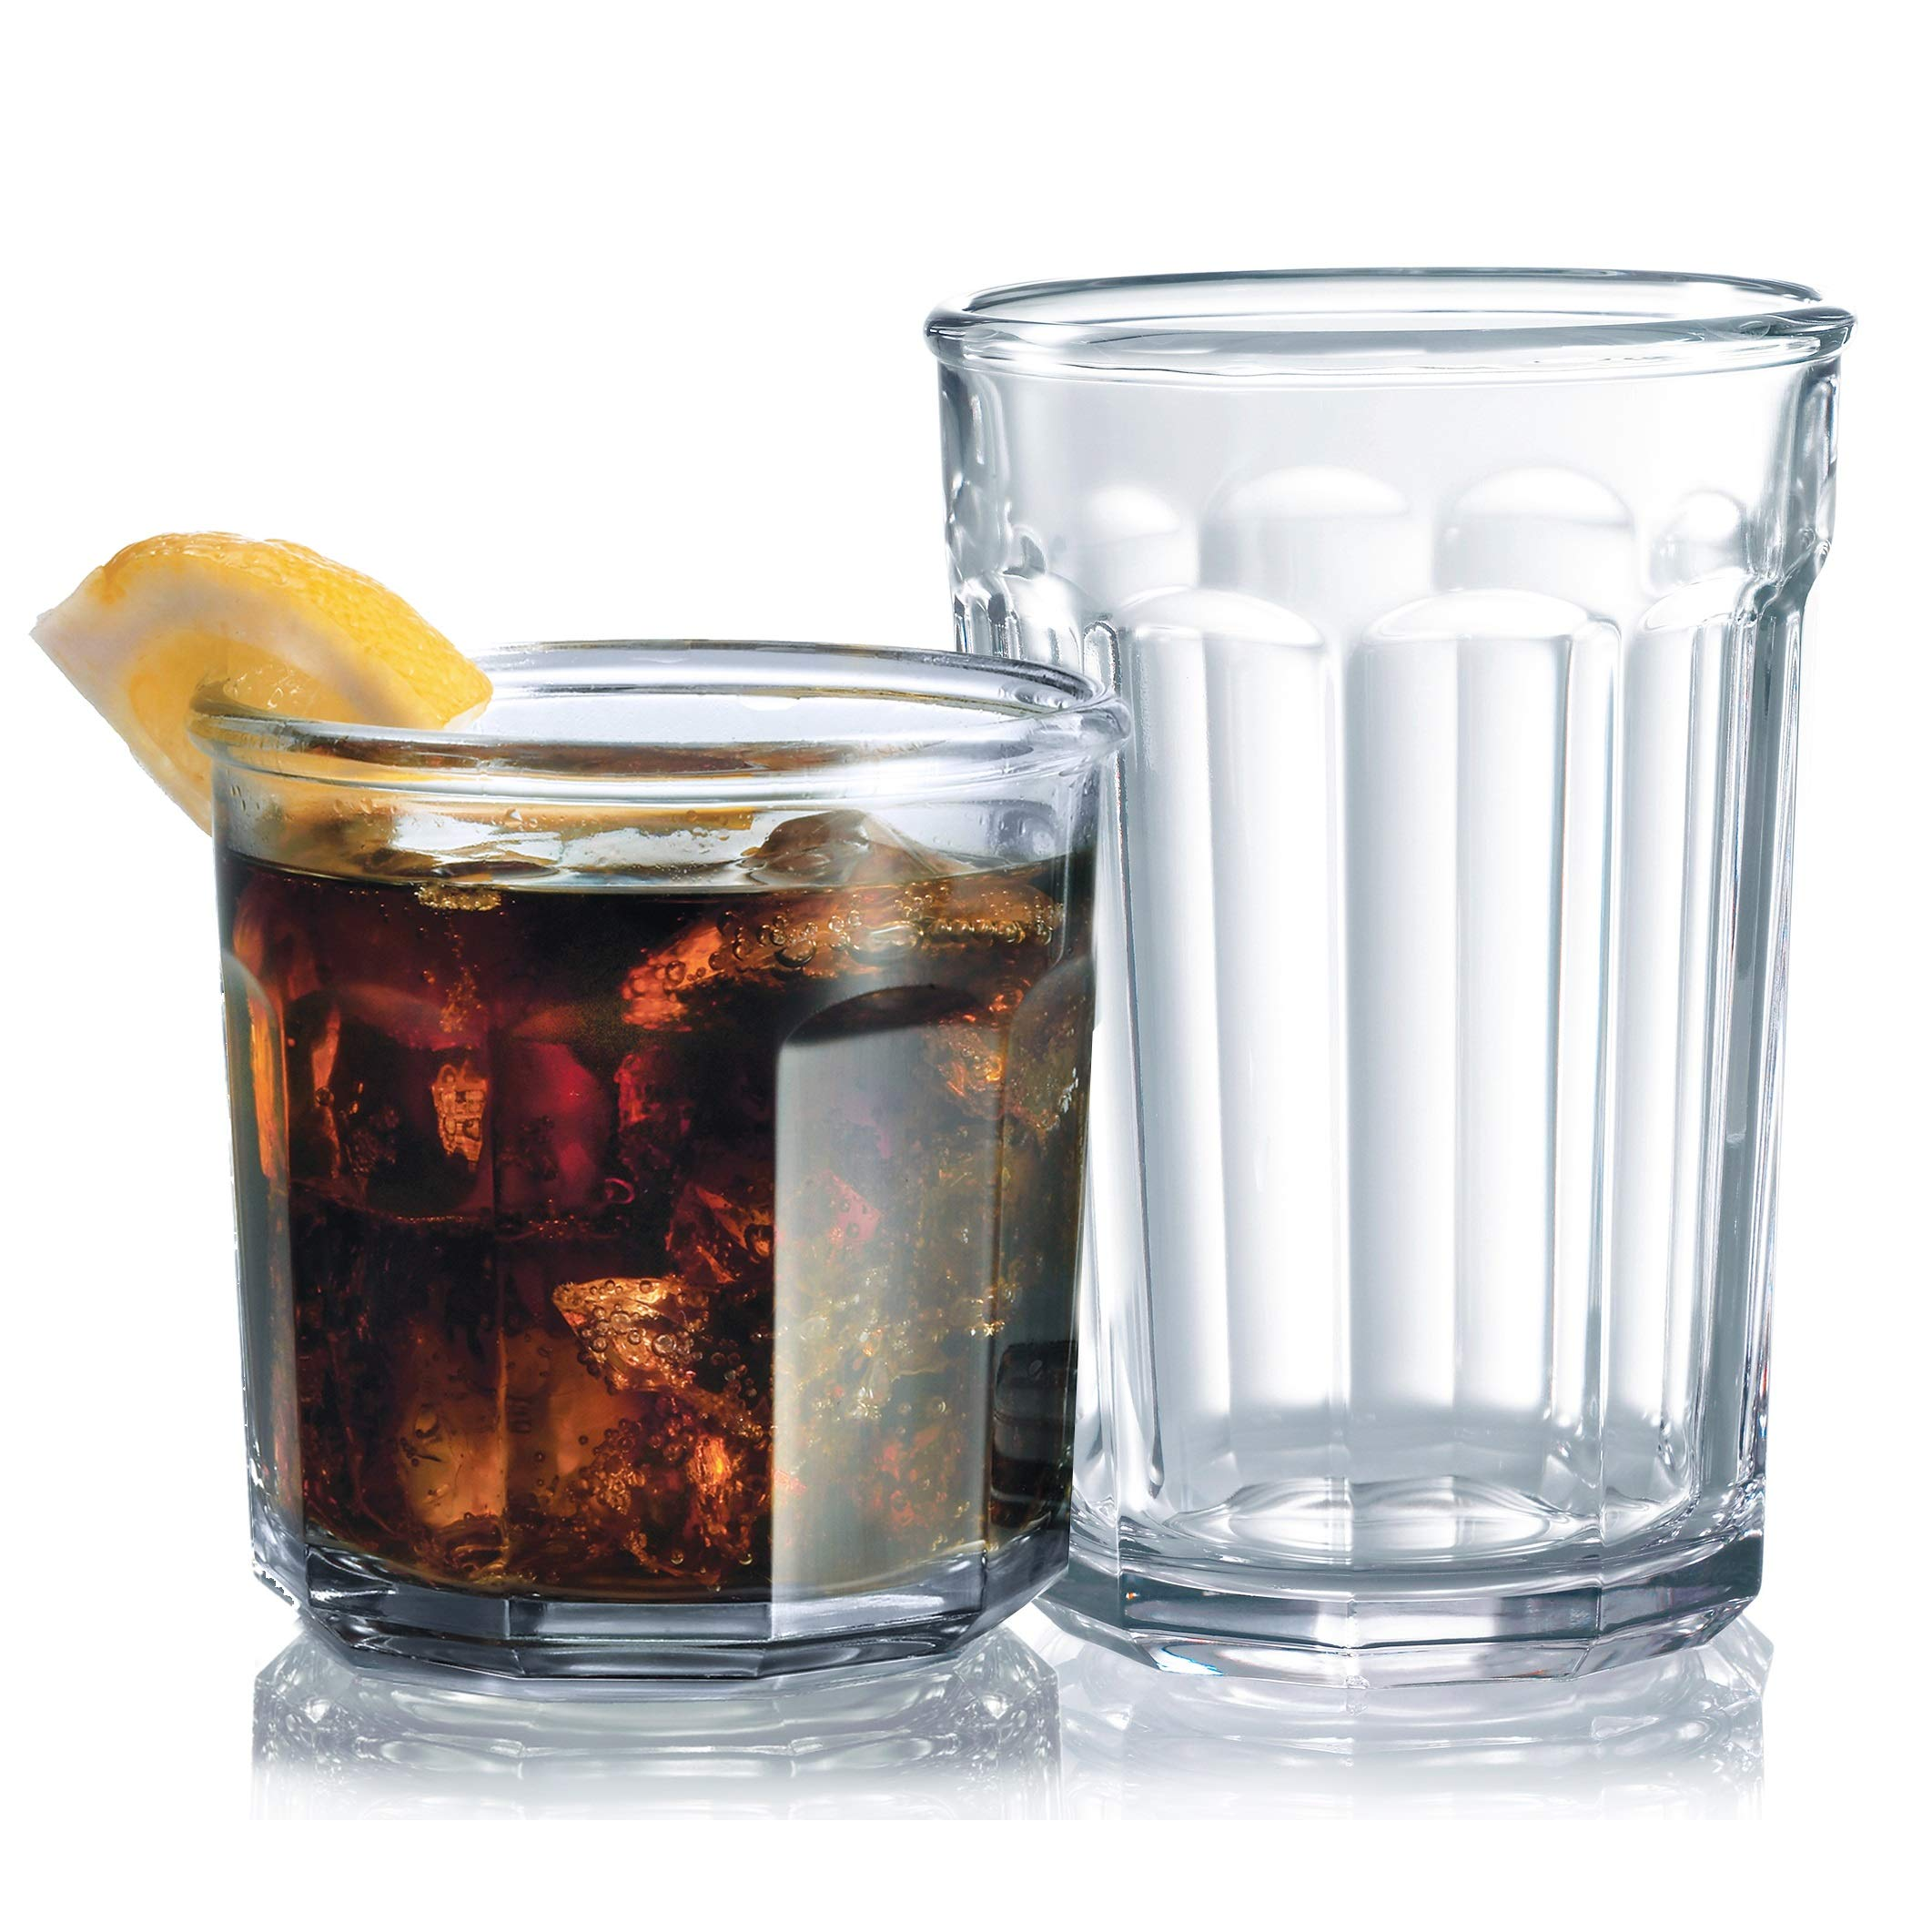 Set of 16 Durable Drinking Glasses | Heavy Base Glass Cups | Glassware Set Includes 8-21 oz Highball Glasses 8-14 oz Tumbler Glasses Ideal for Water, Juice, Beer, Wine, and Cocktails